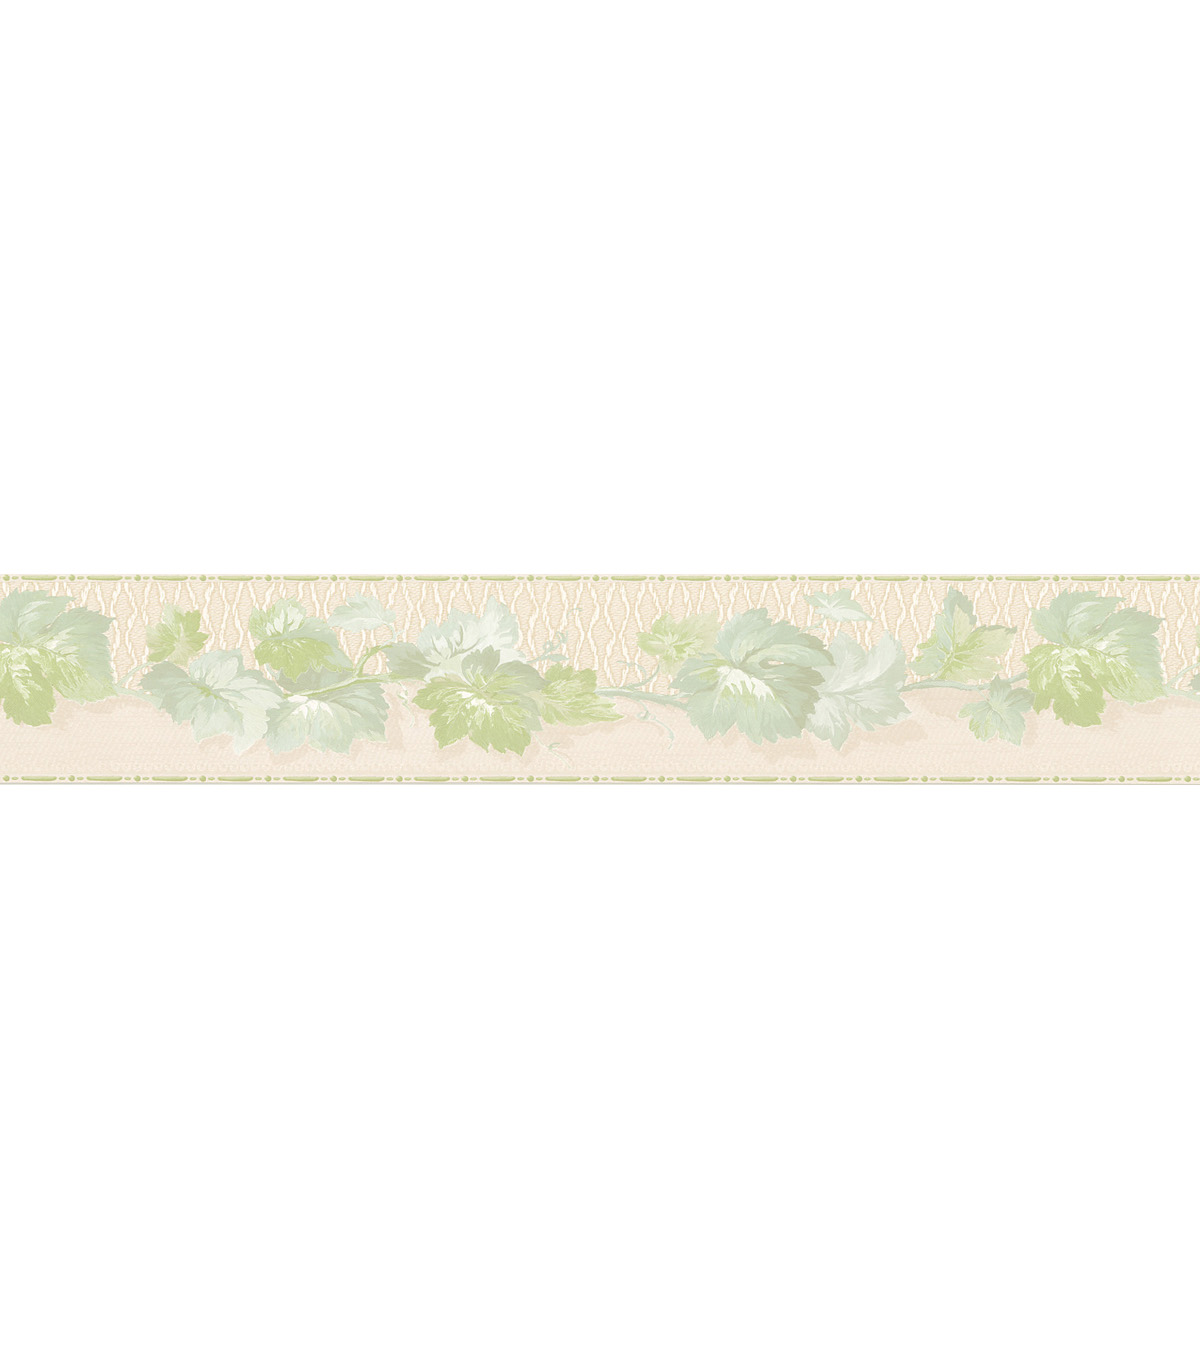 Ivy Trail Wallpaper Border, Green Sample